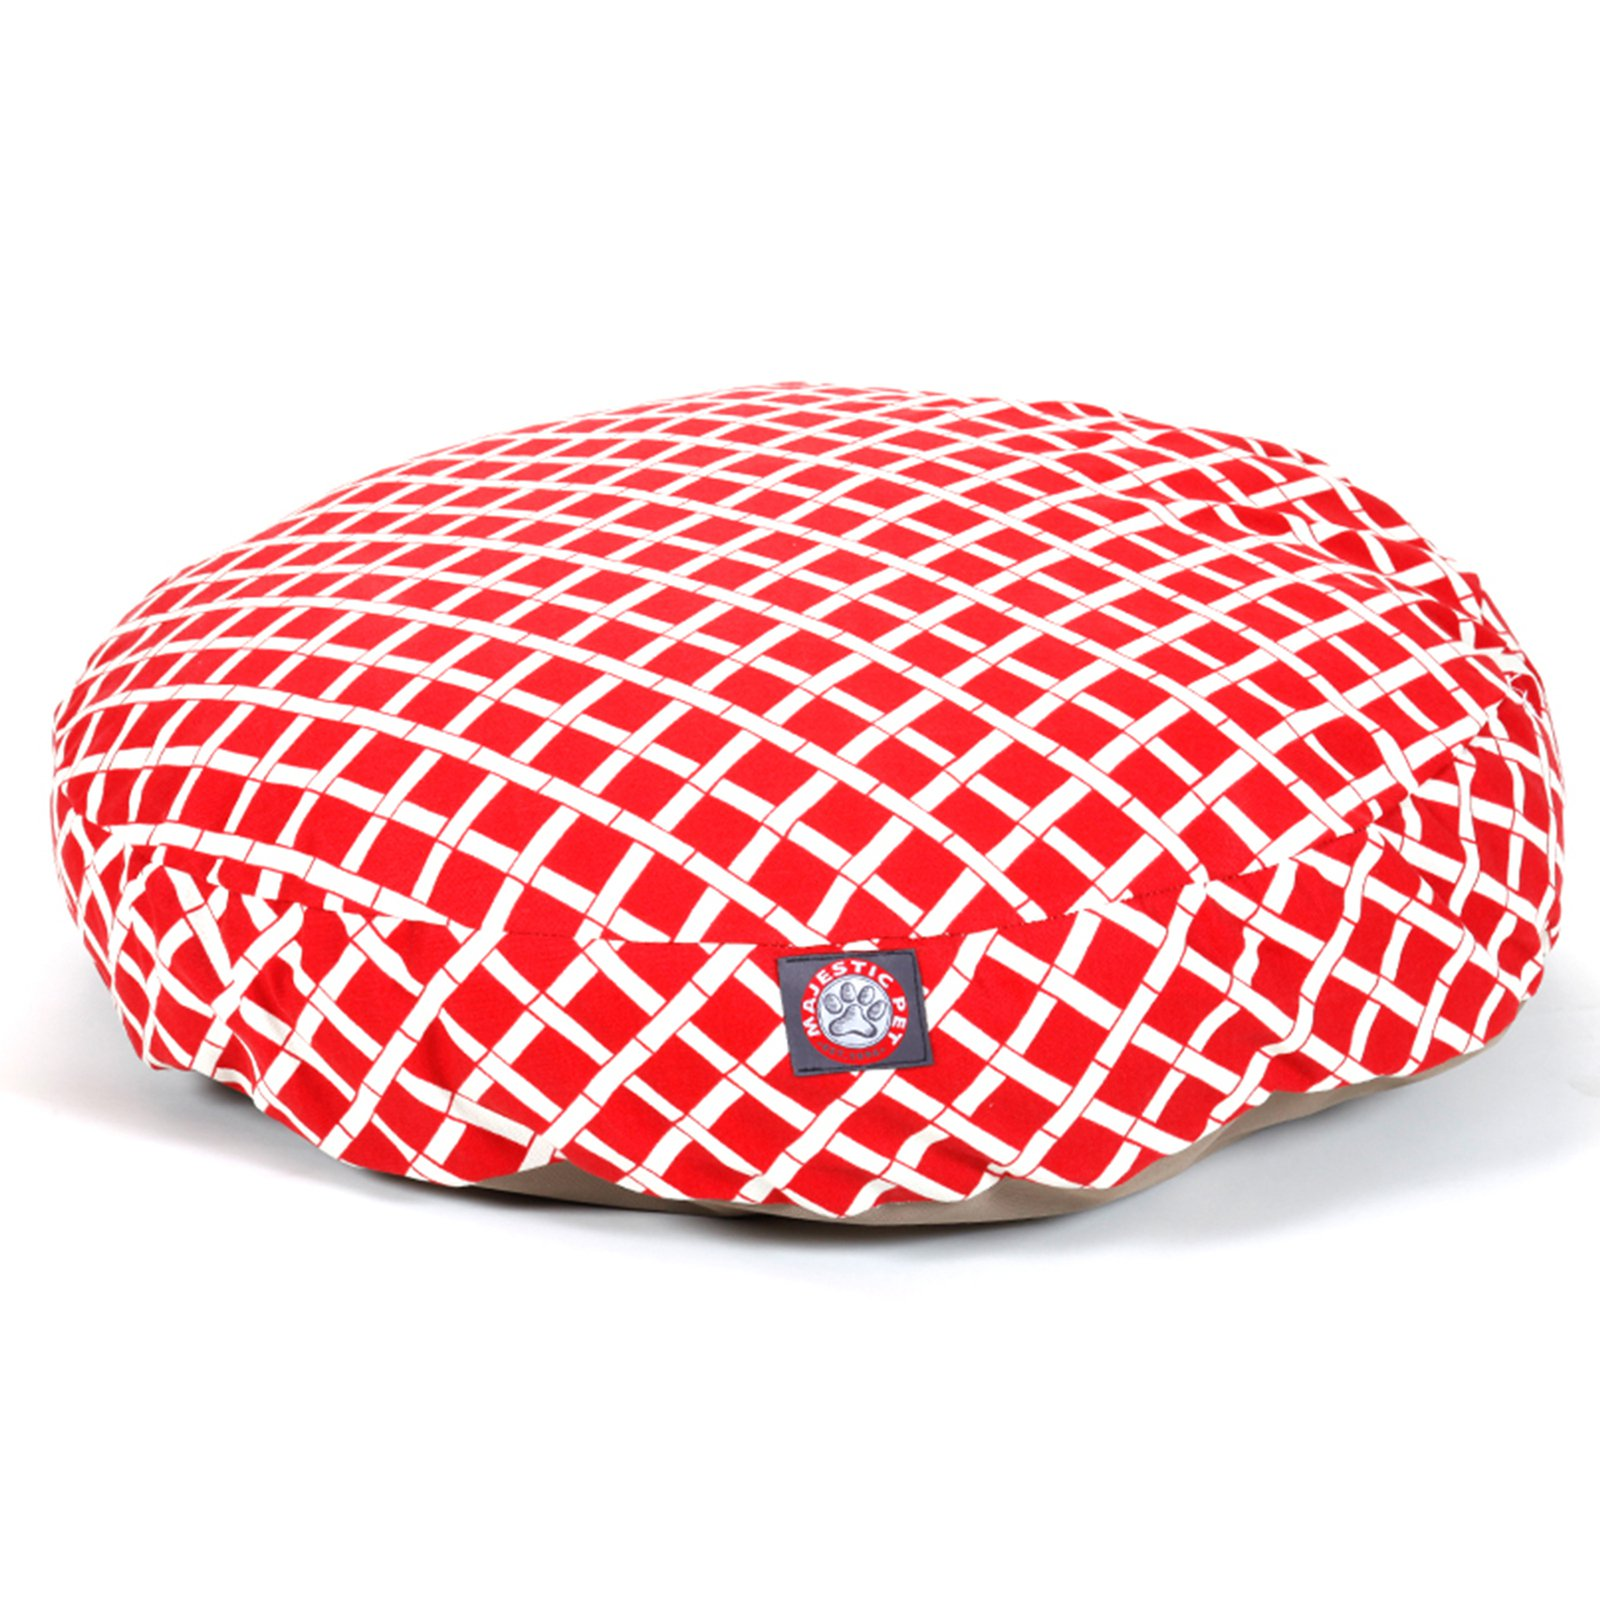 Majestic Pet Products Bamboo Round Pet Bed, Red